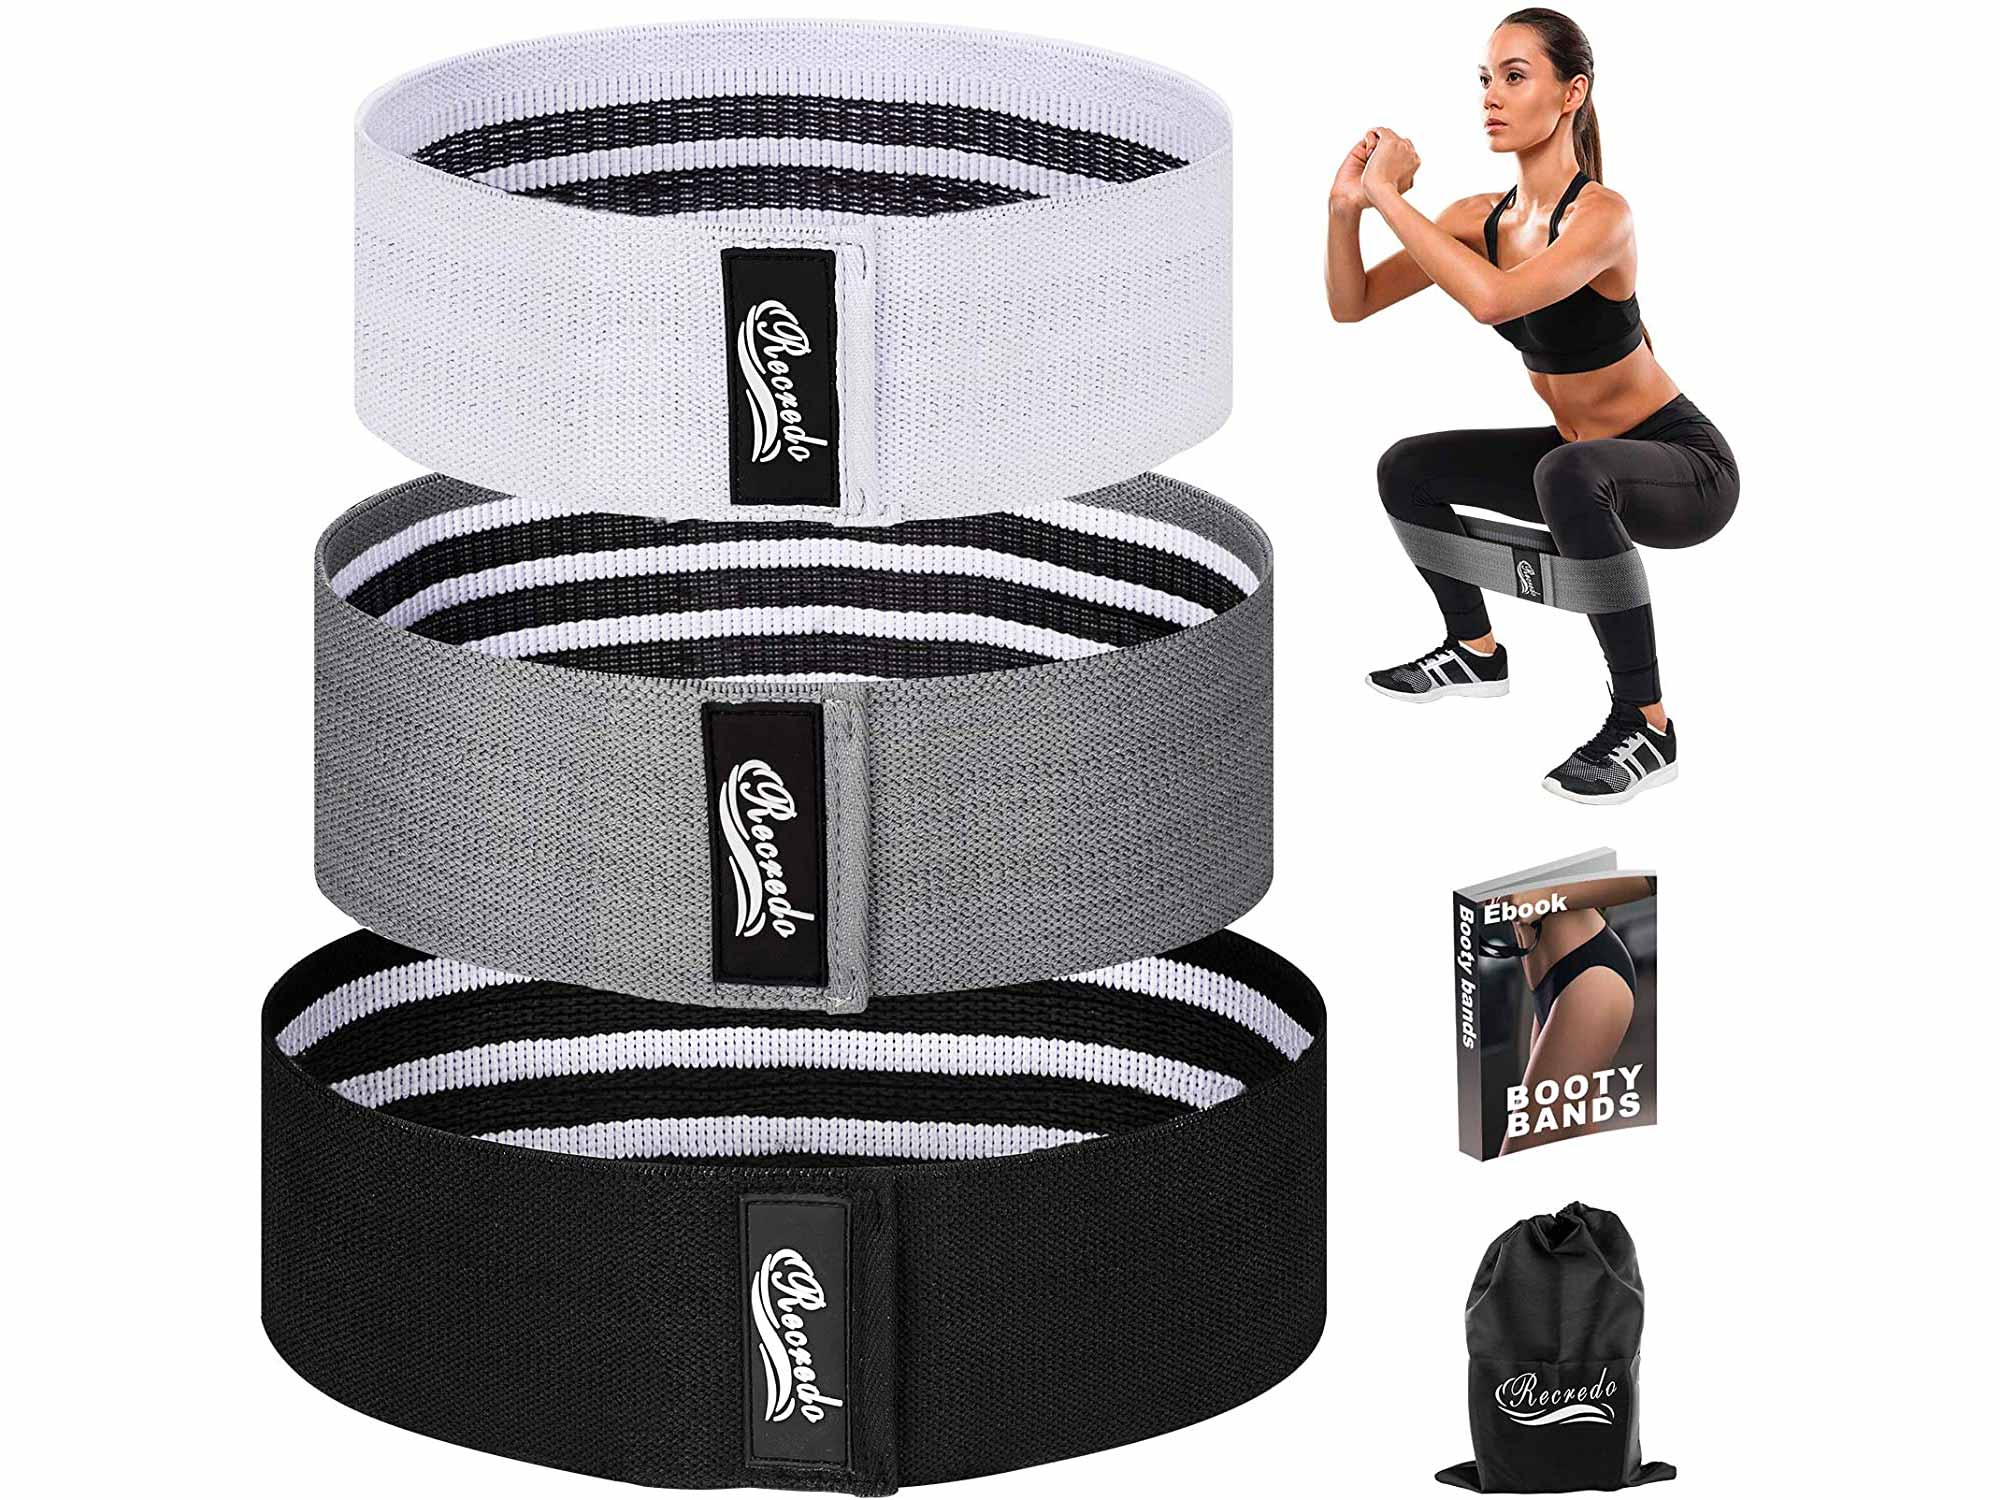 Recredo Booty Bands, Non Slip Resistance Bands for Legs and Butt, Workout Bands Exercise Bands Glute Bands for Women, 3 Pack - Training Ebook and Video Included